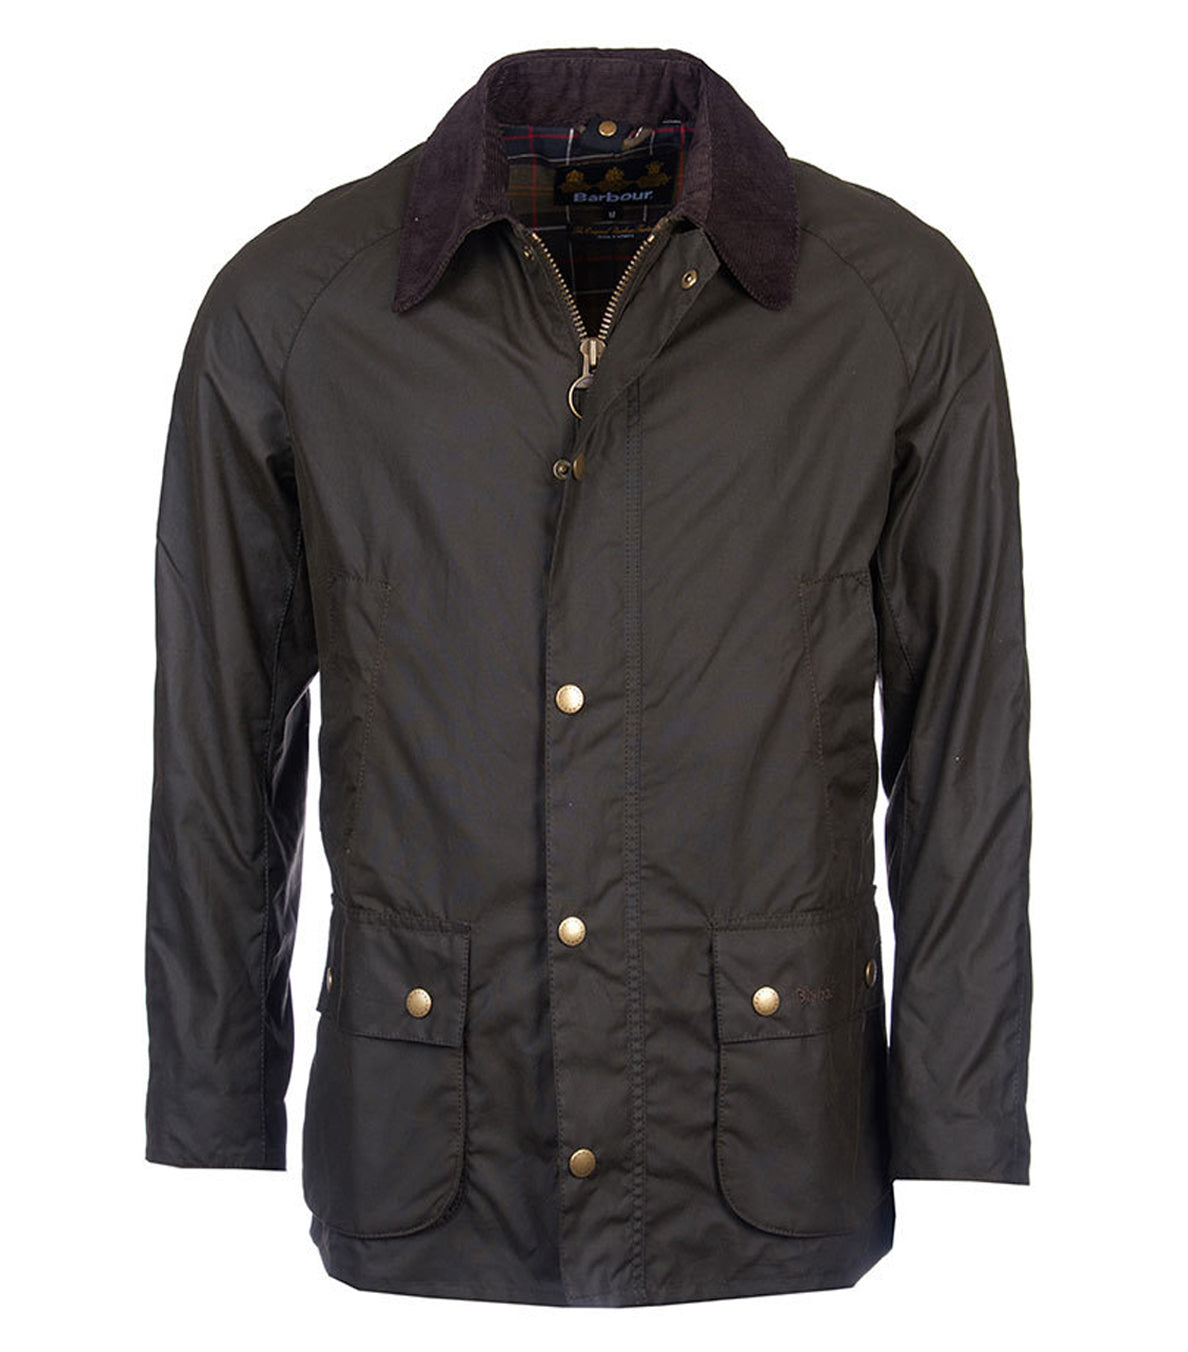 Barbour Ashby Waxed Jacket - SALE - North Shore Saddlery